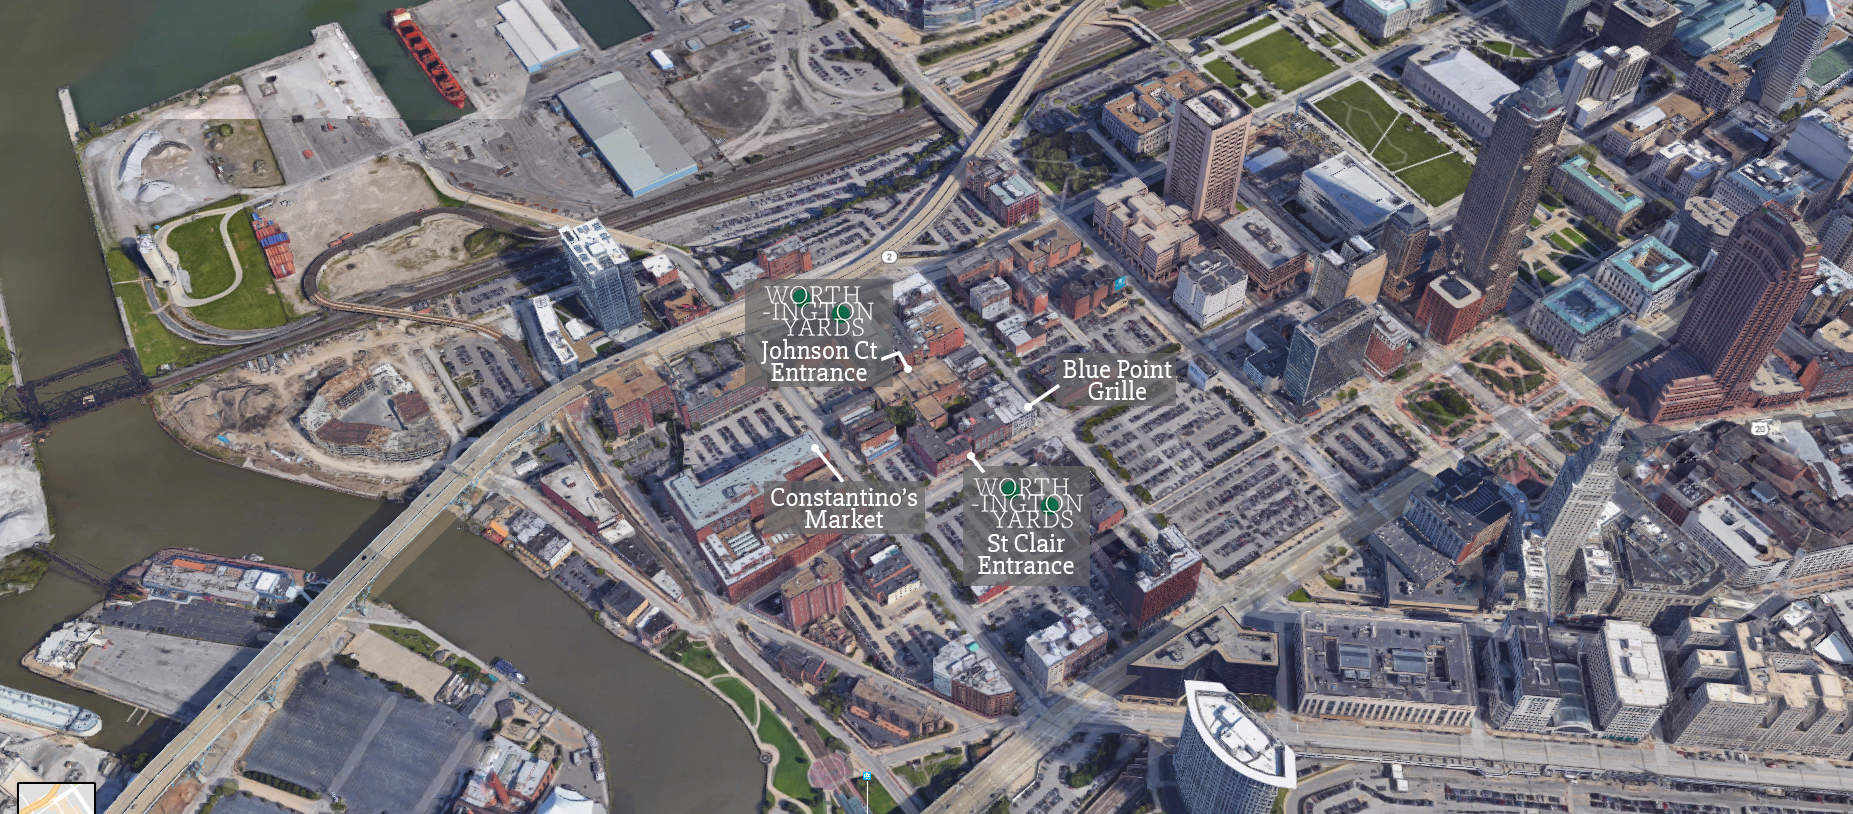 Worthington Yards is located in downtown Cleveland near Blue Point Grille, Cleveland Chop and several other fine restaurants.